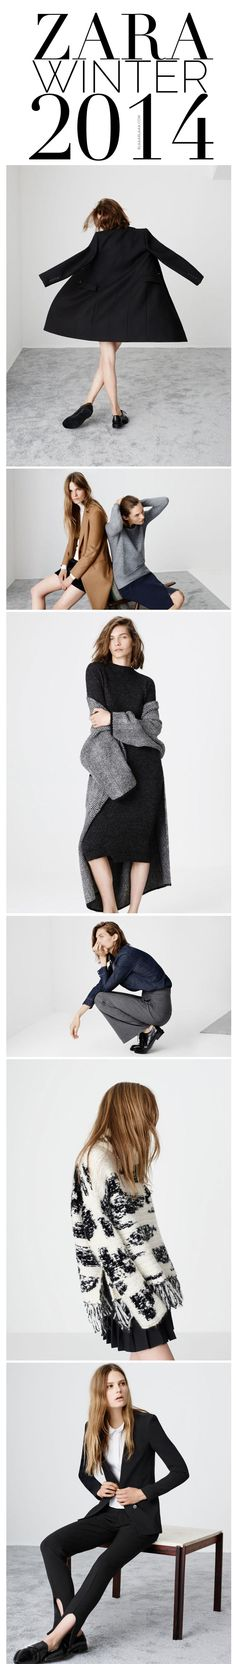 Zara Winter 2014